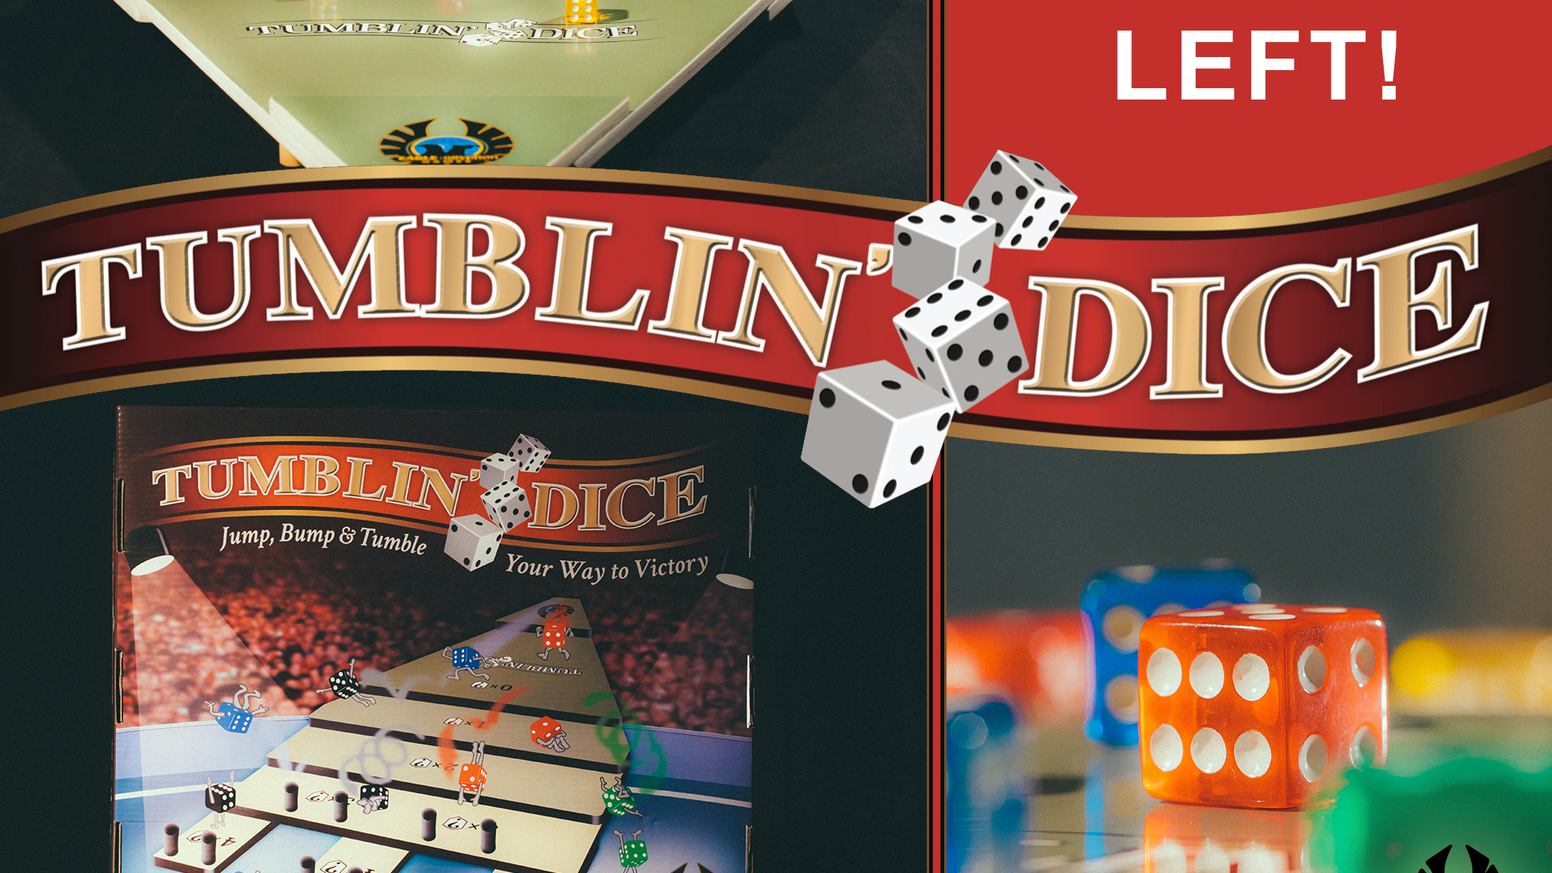 Take a chance on Tumblin' Dice, a table-top game of precision and luck that will test your dexterity as you roll for the highest score.